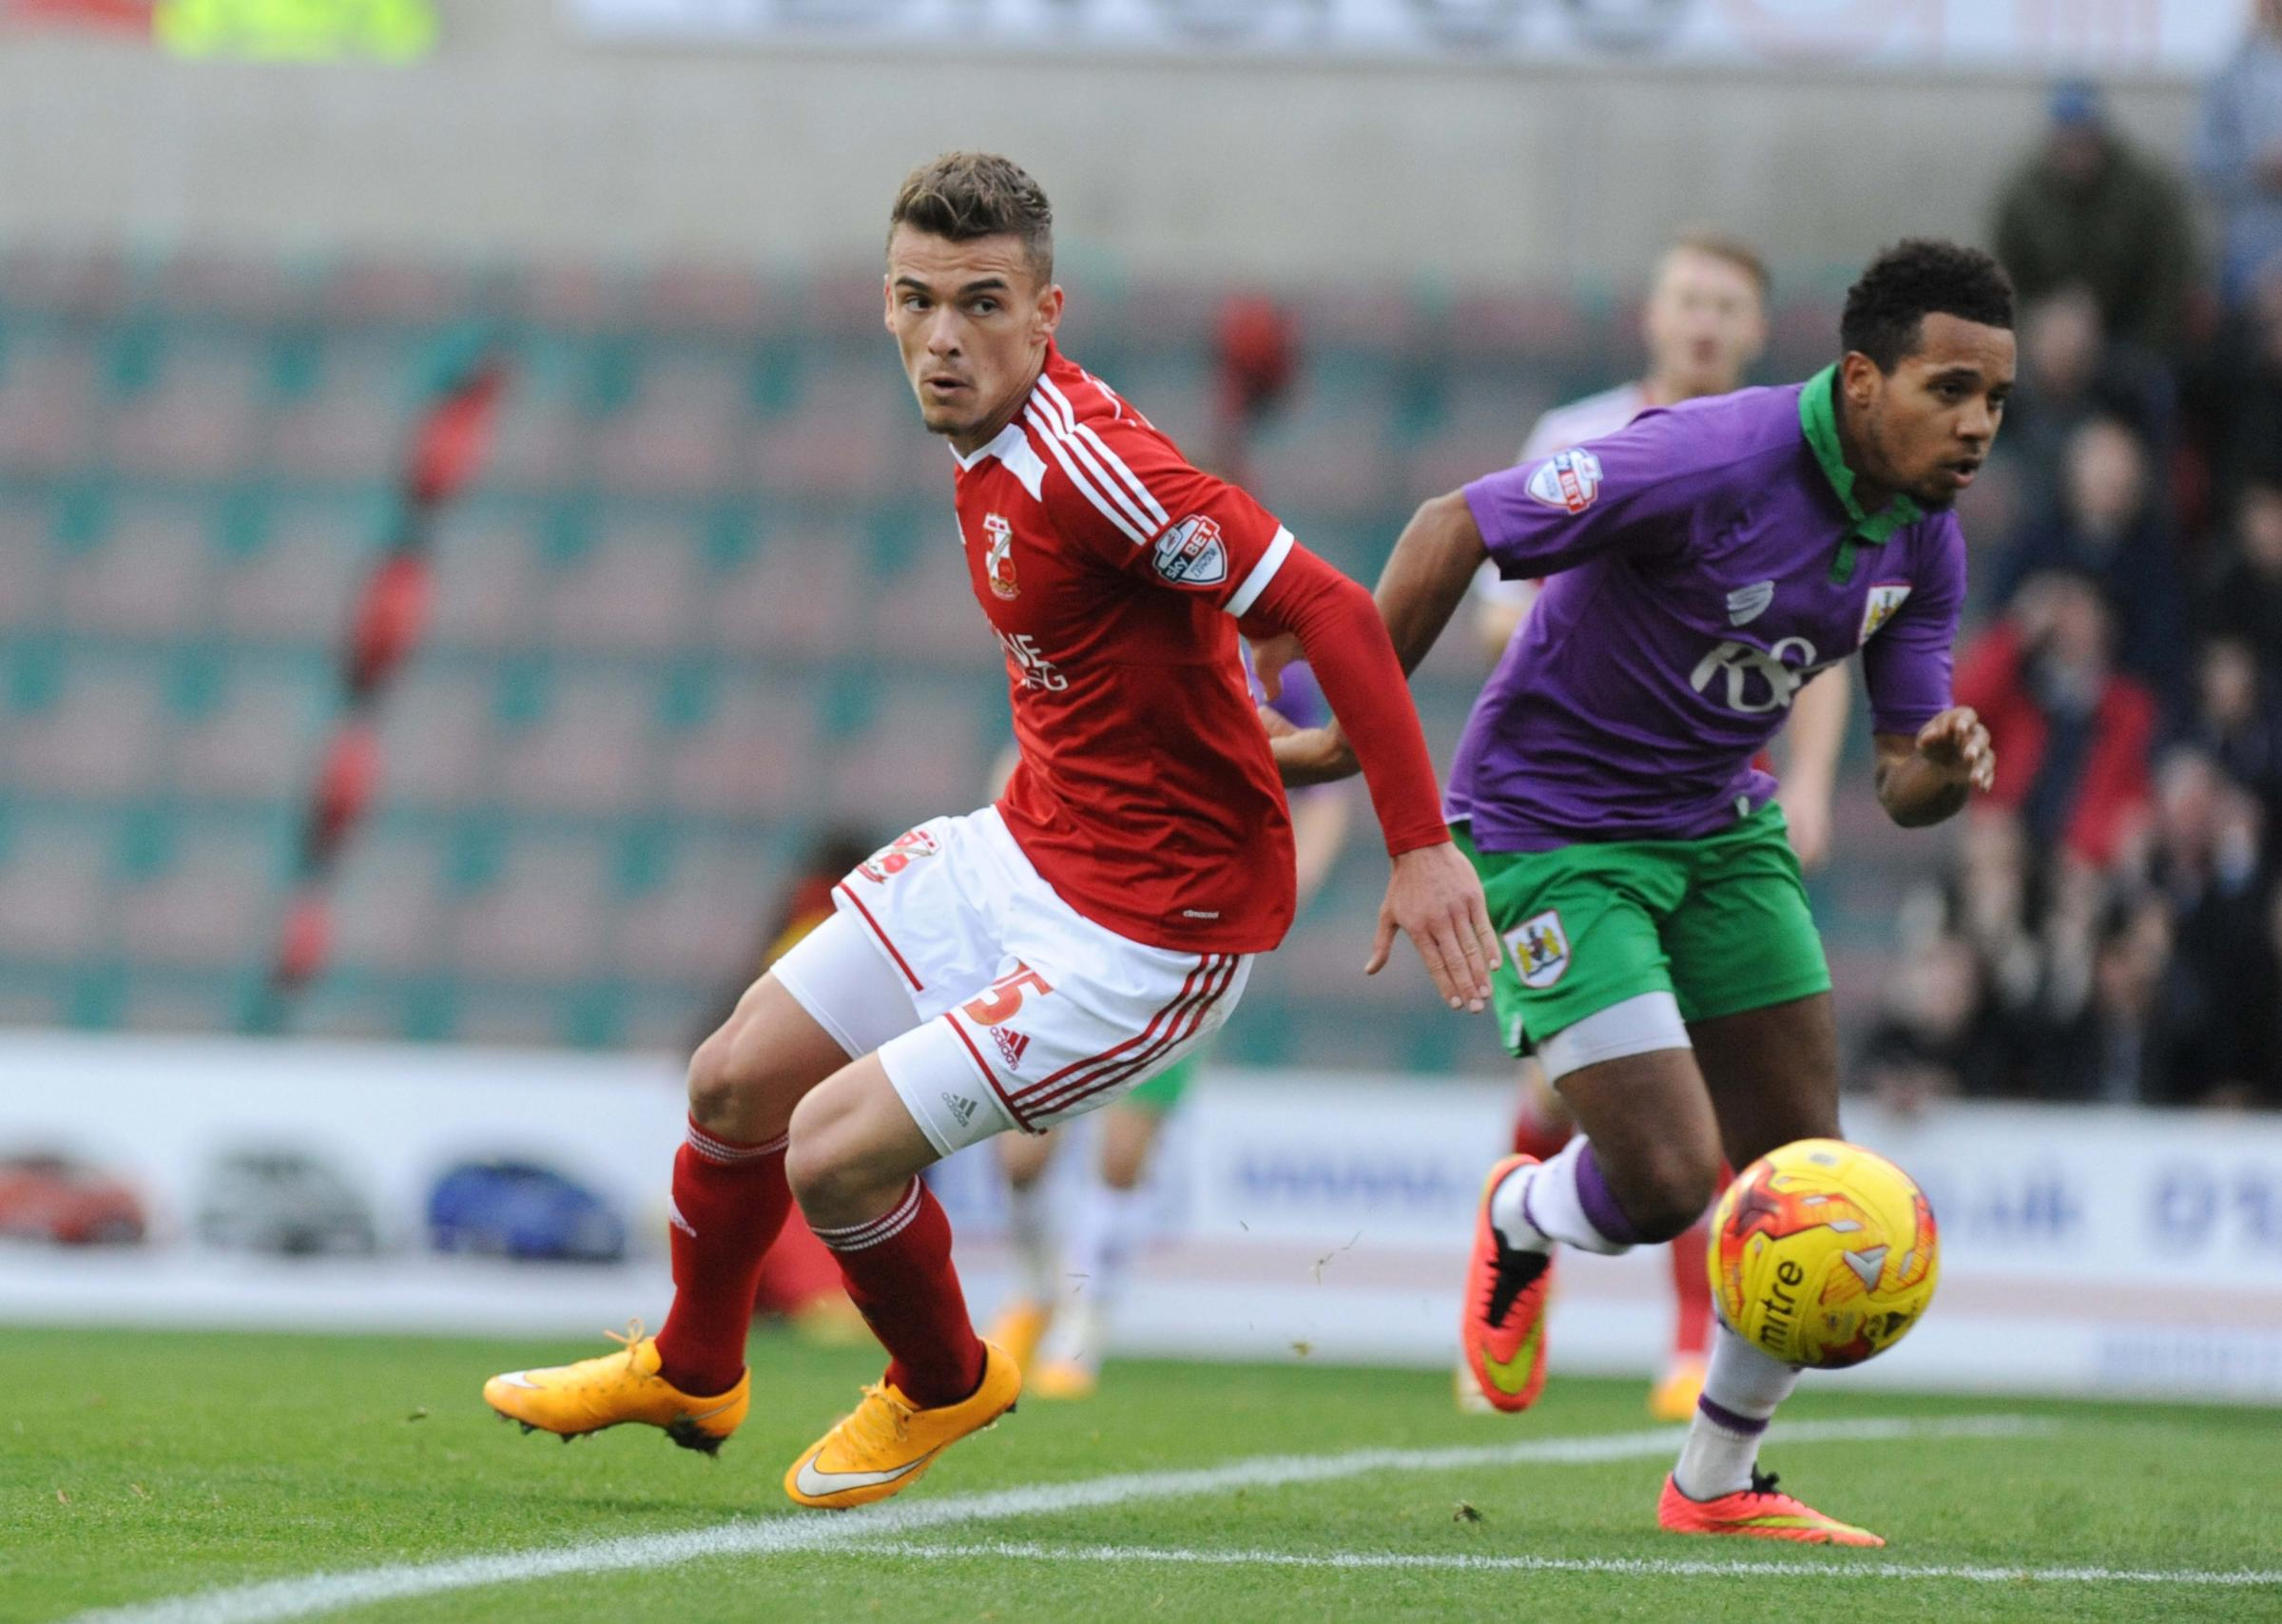 Harry Toffolo has extended his stay until the end of the season